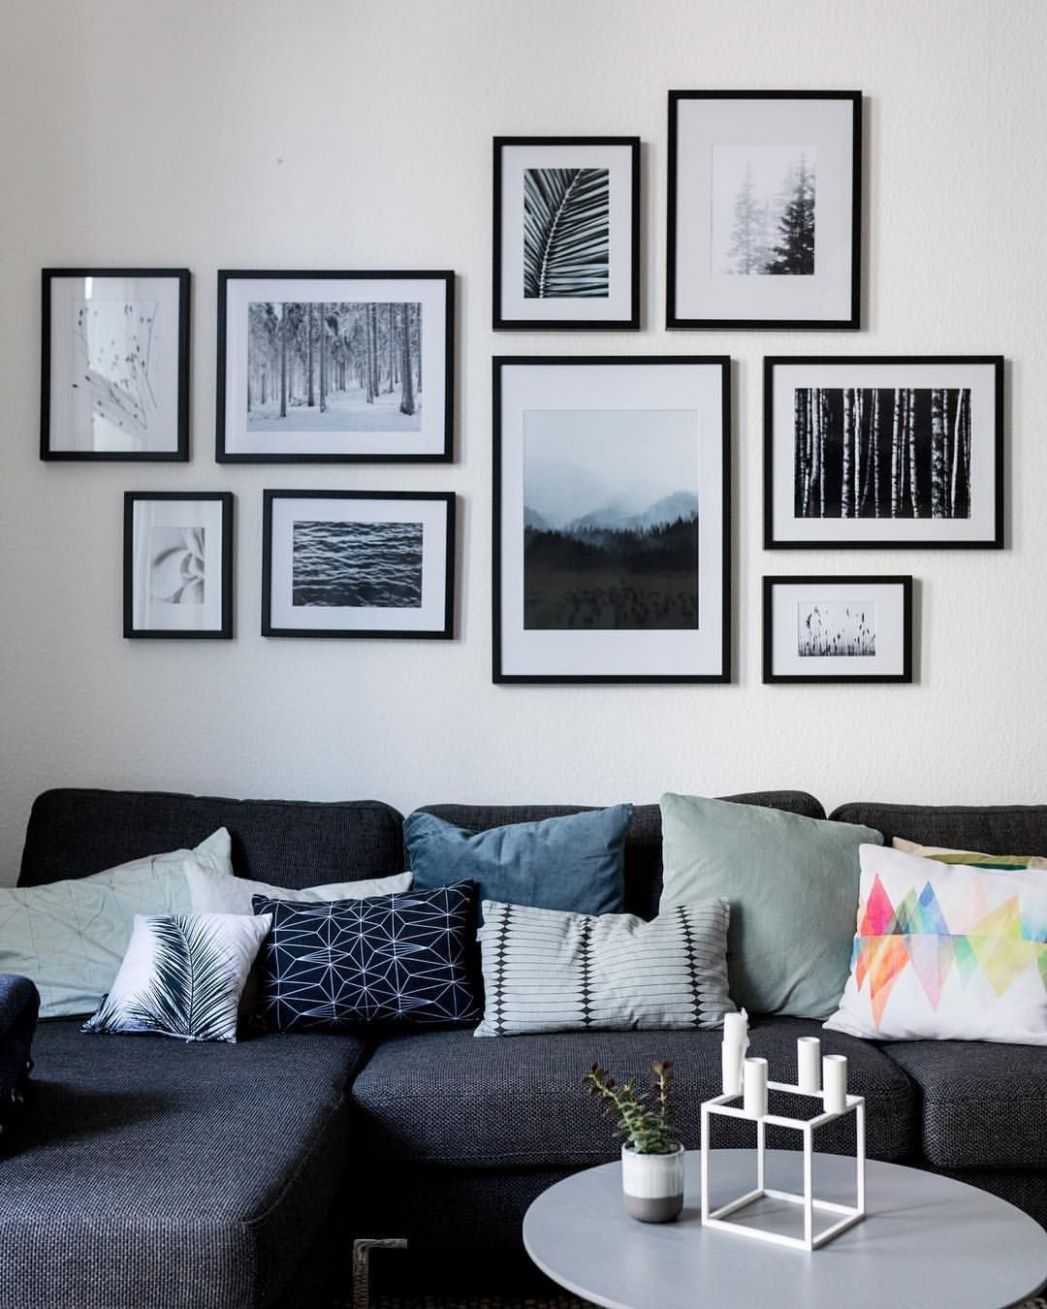 11 Best Wall Decoration Ideas Creative for Your Home | Living room ...